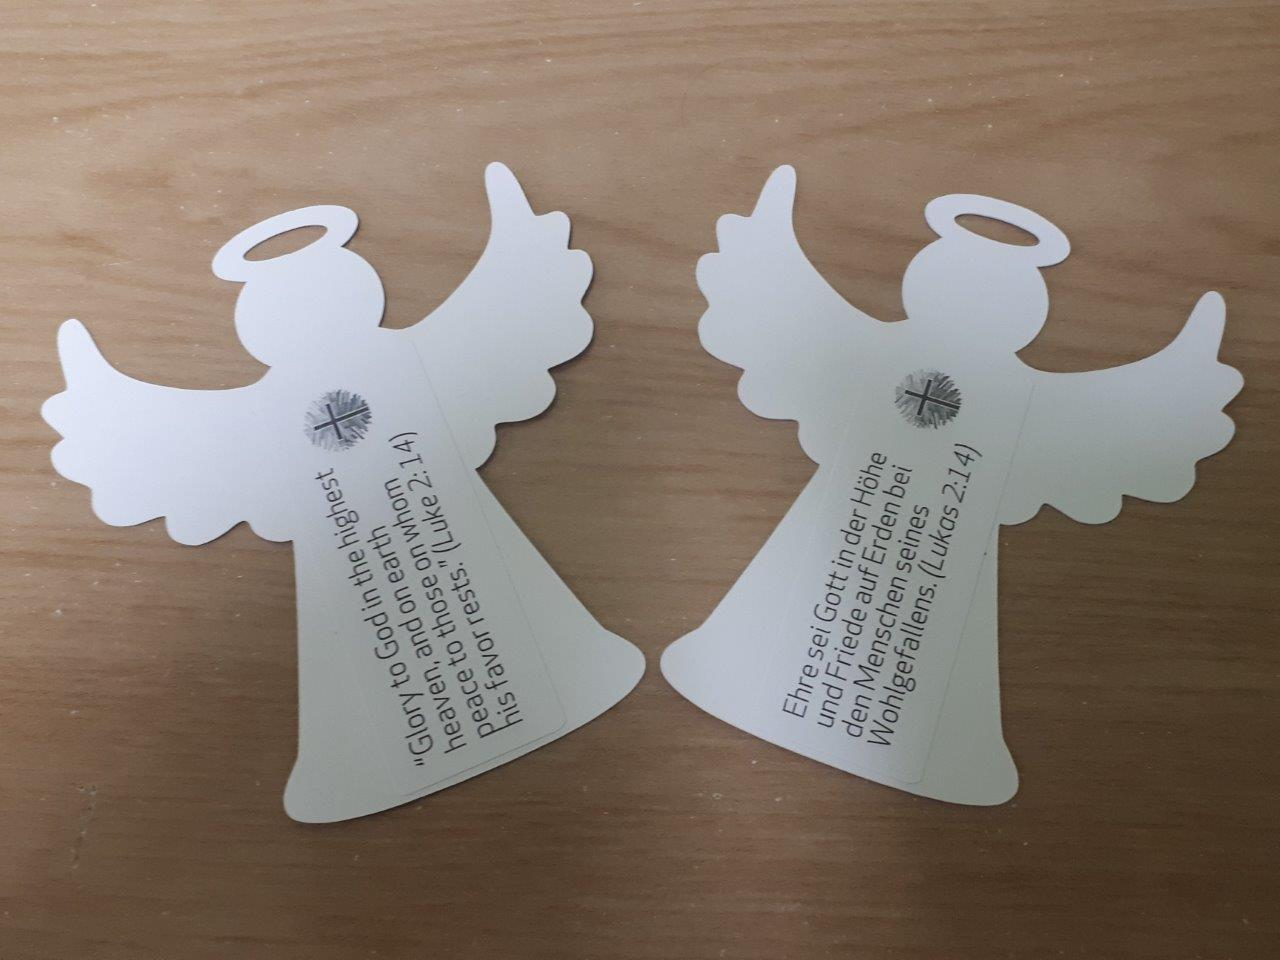 2020 White Paper Angel Ornaments Sent By Office By Postal Mail